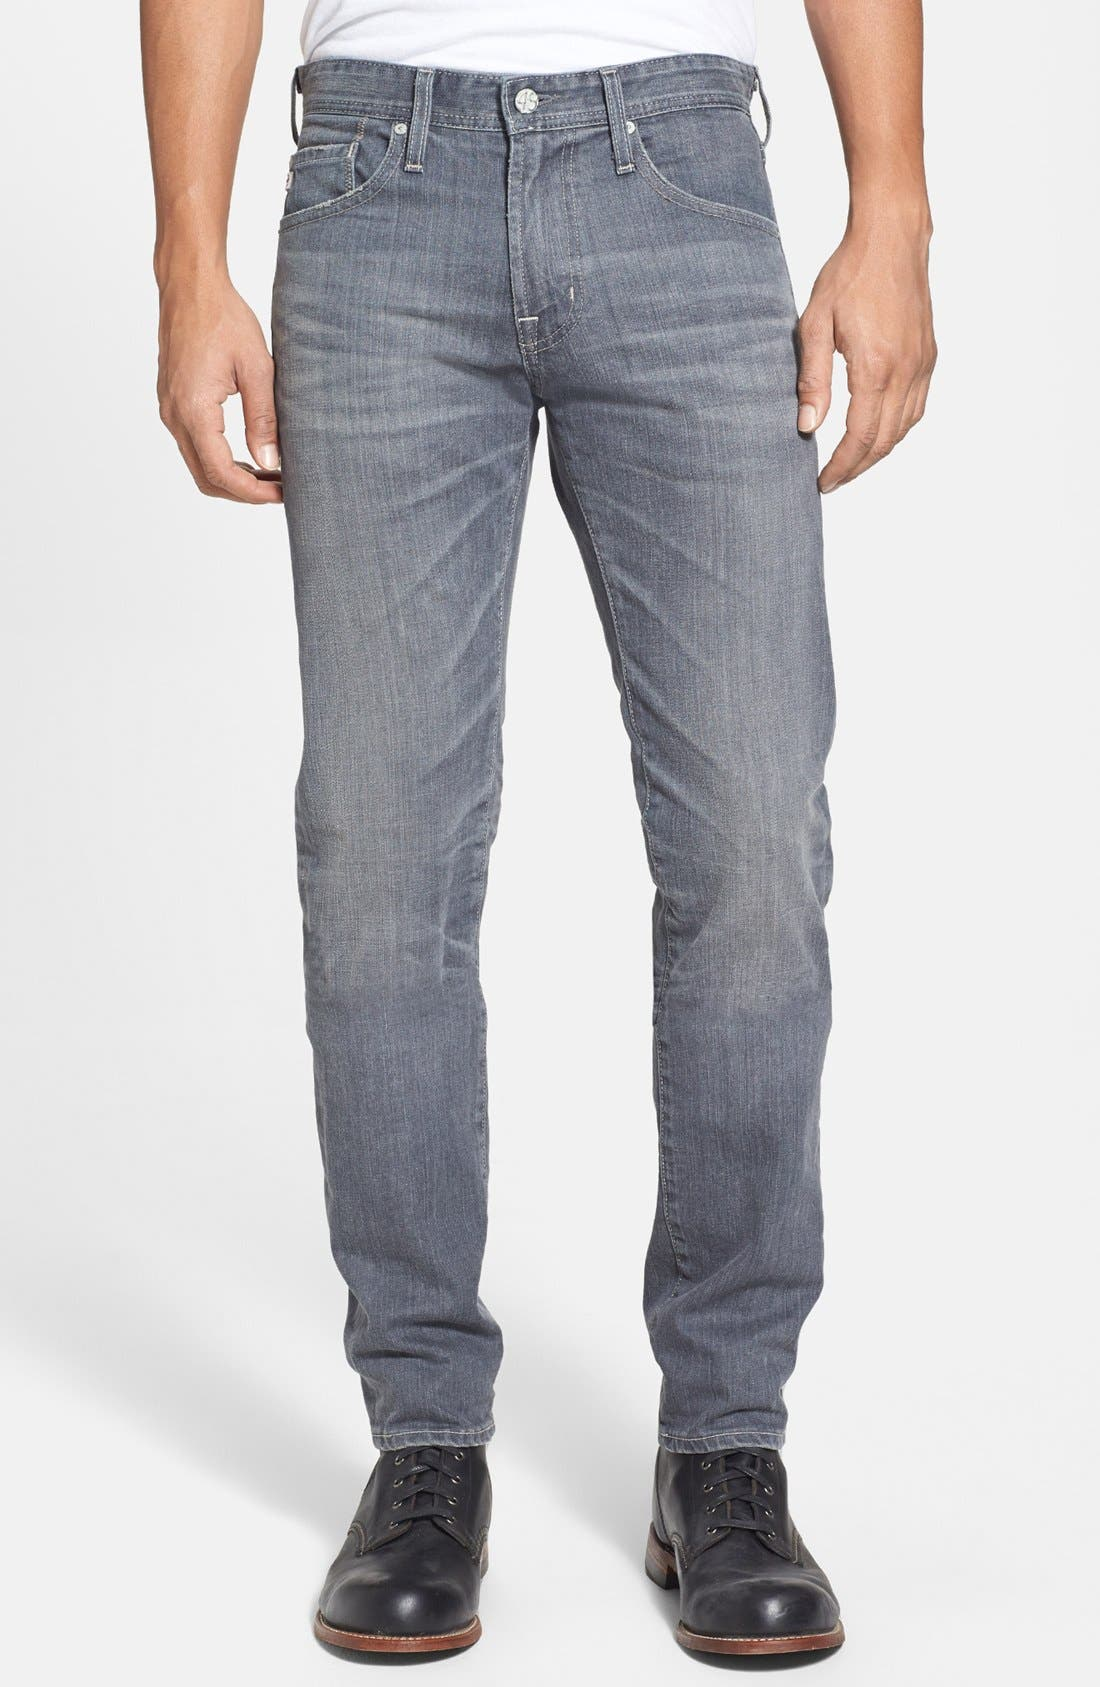 Alternate Image 1 Selected - AG 'Dylan' Skinny Fit Jeans (9 Years Grey)